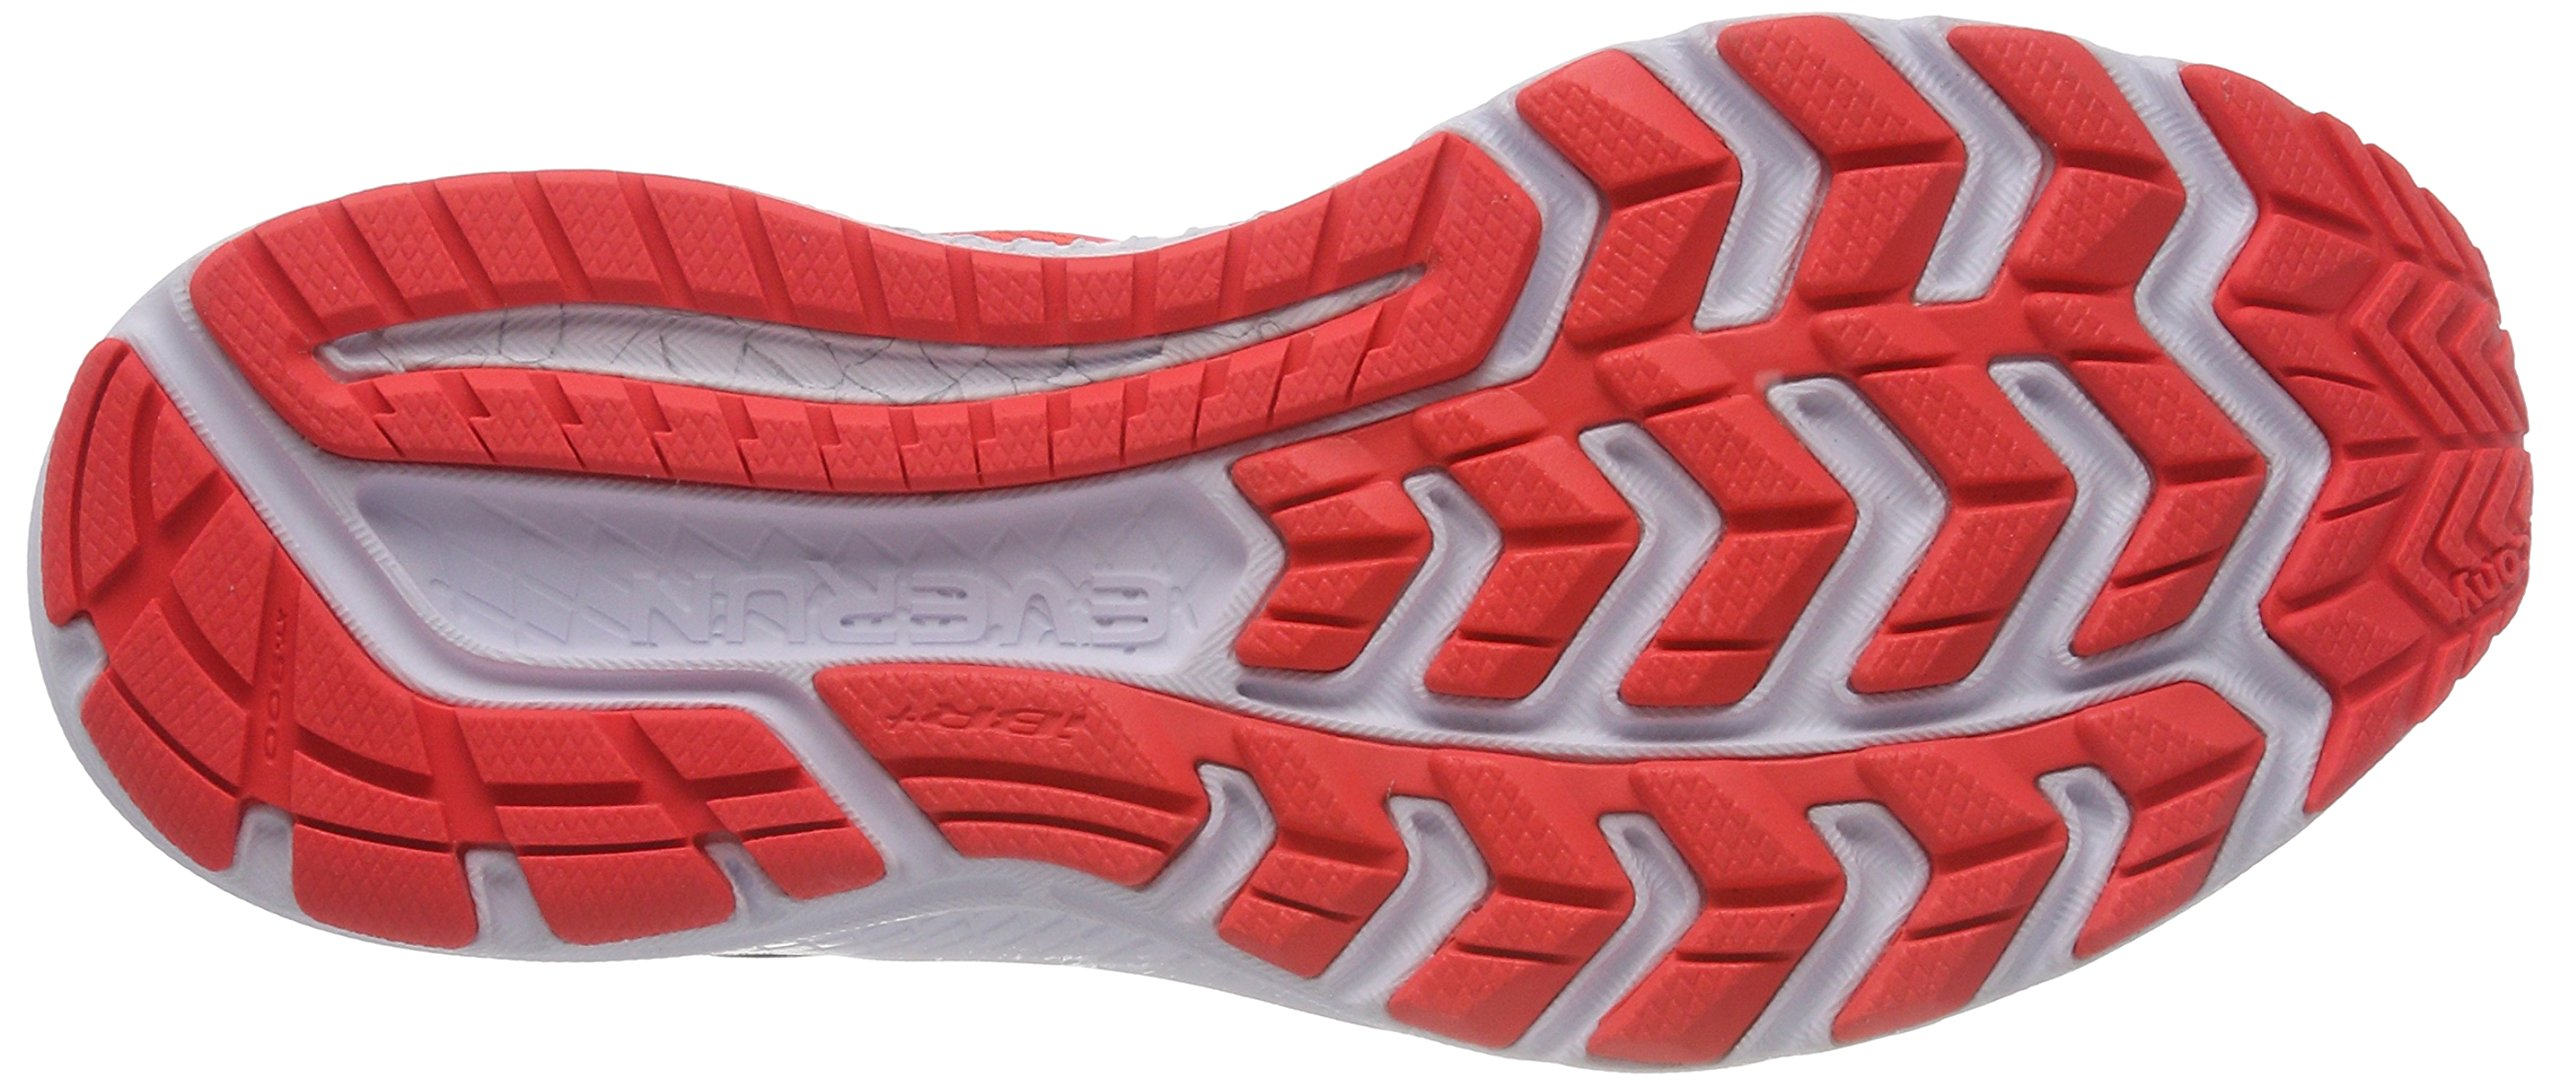 81GN8jSlrEL - Saucony Women's Guide Iso Competition Running Shoes